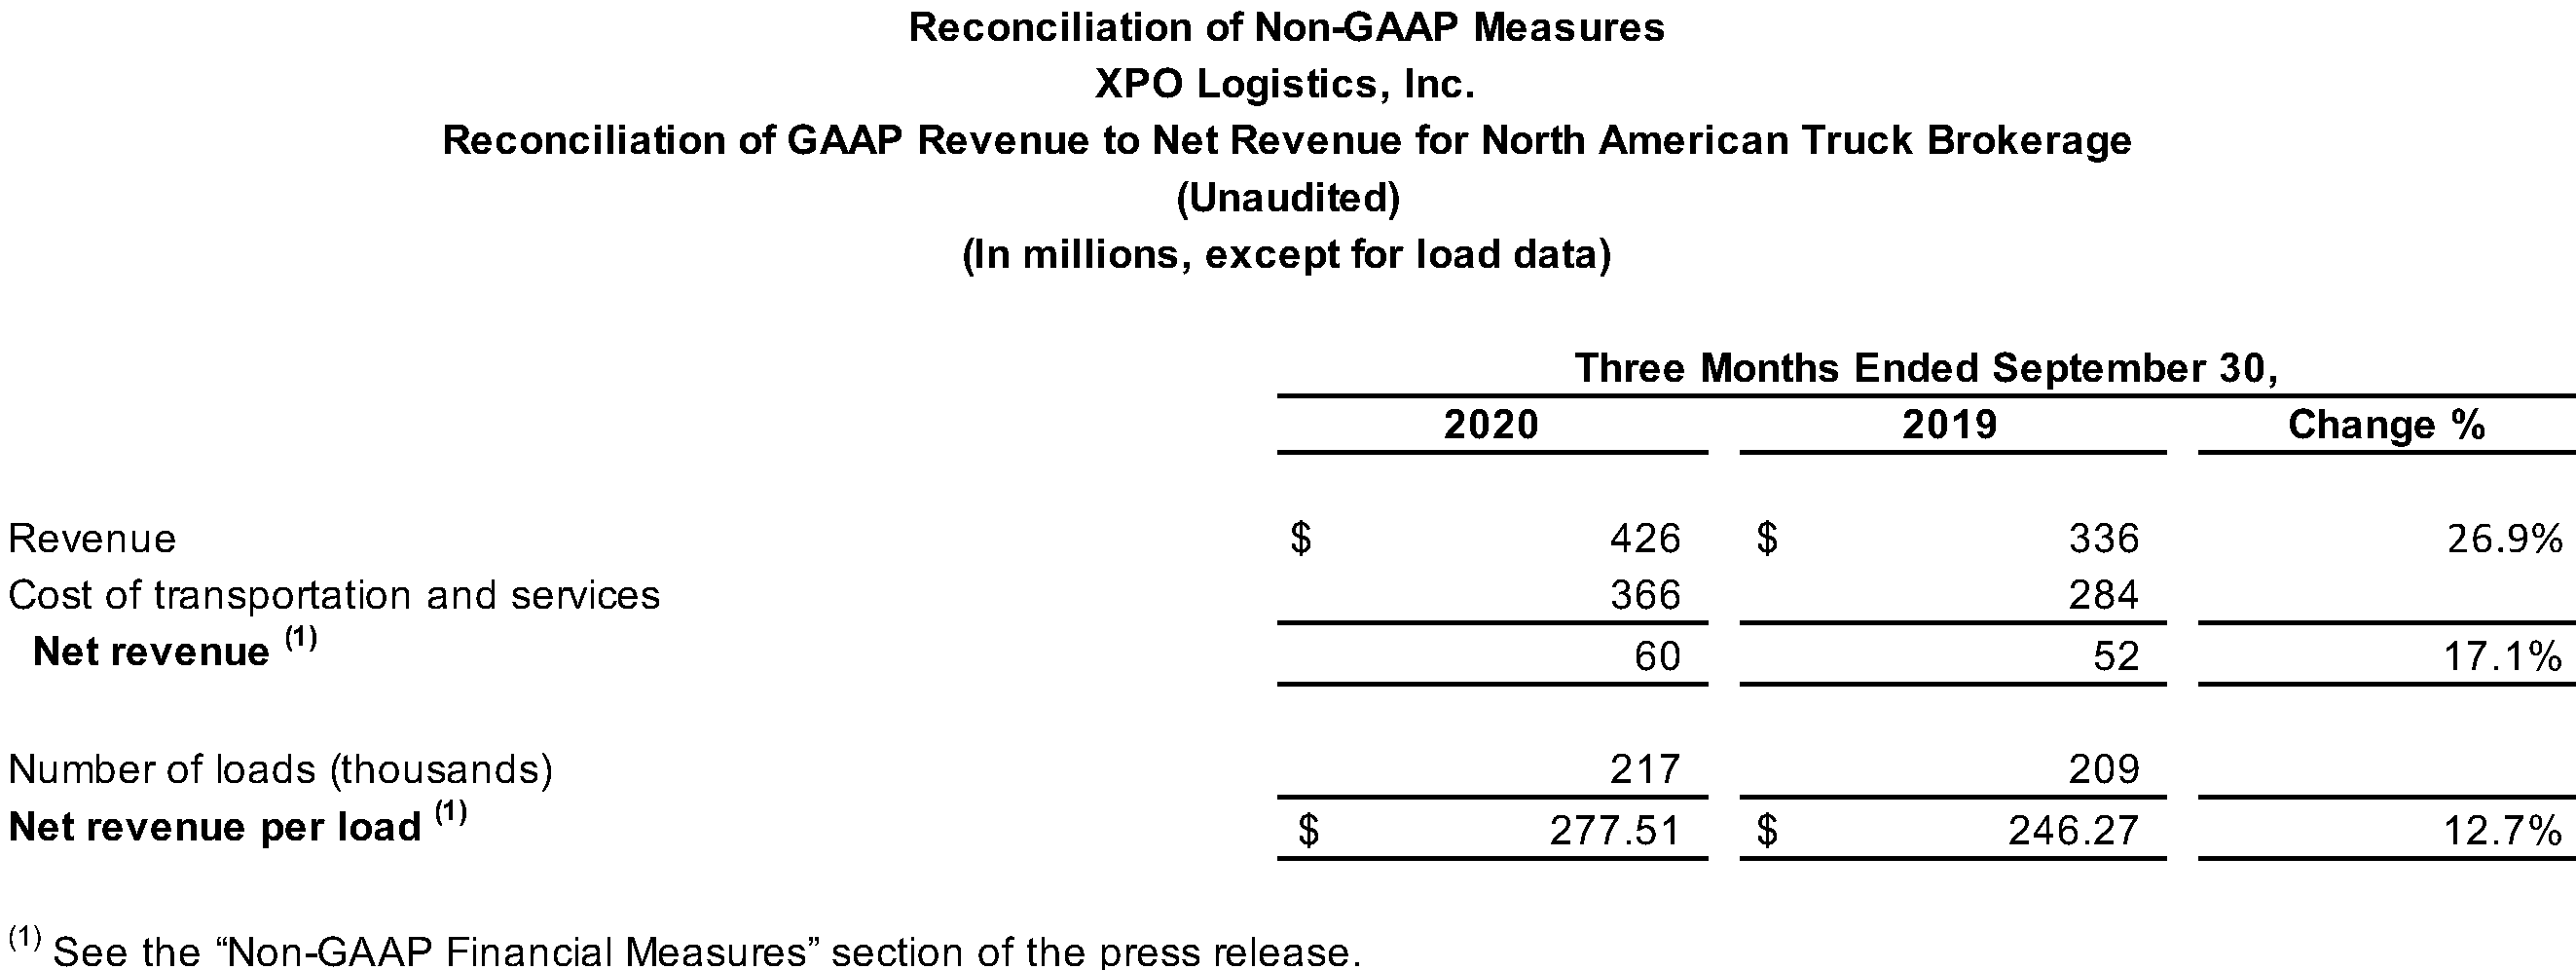 Reconciliation of GAAP Revenue to Net Revenue for North American Truck Brokerage